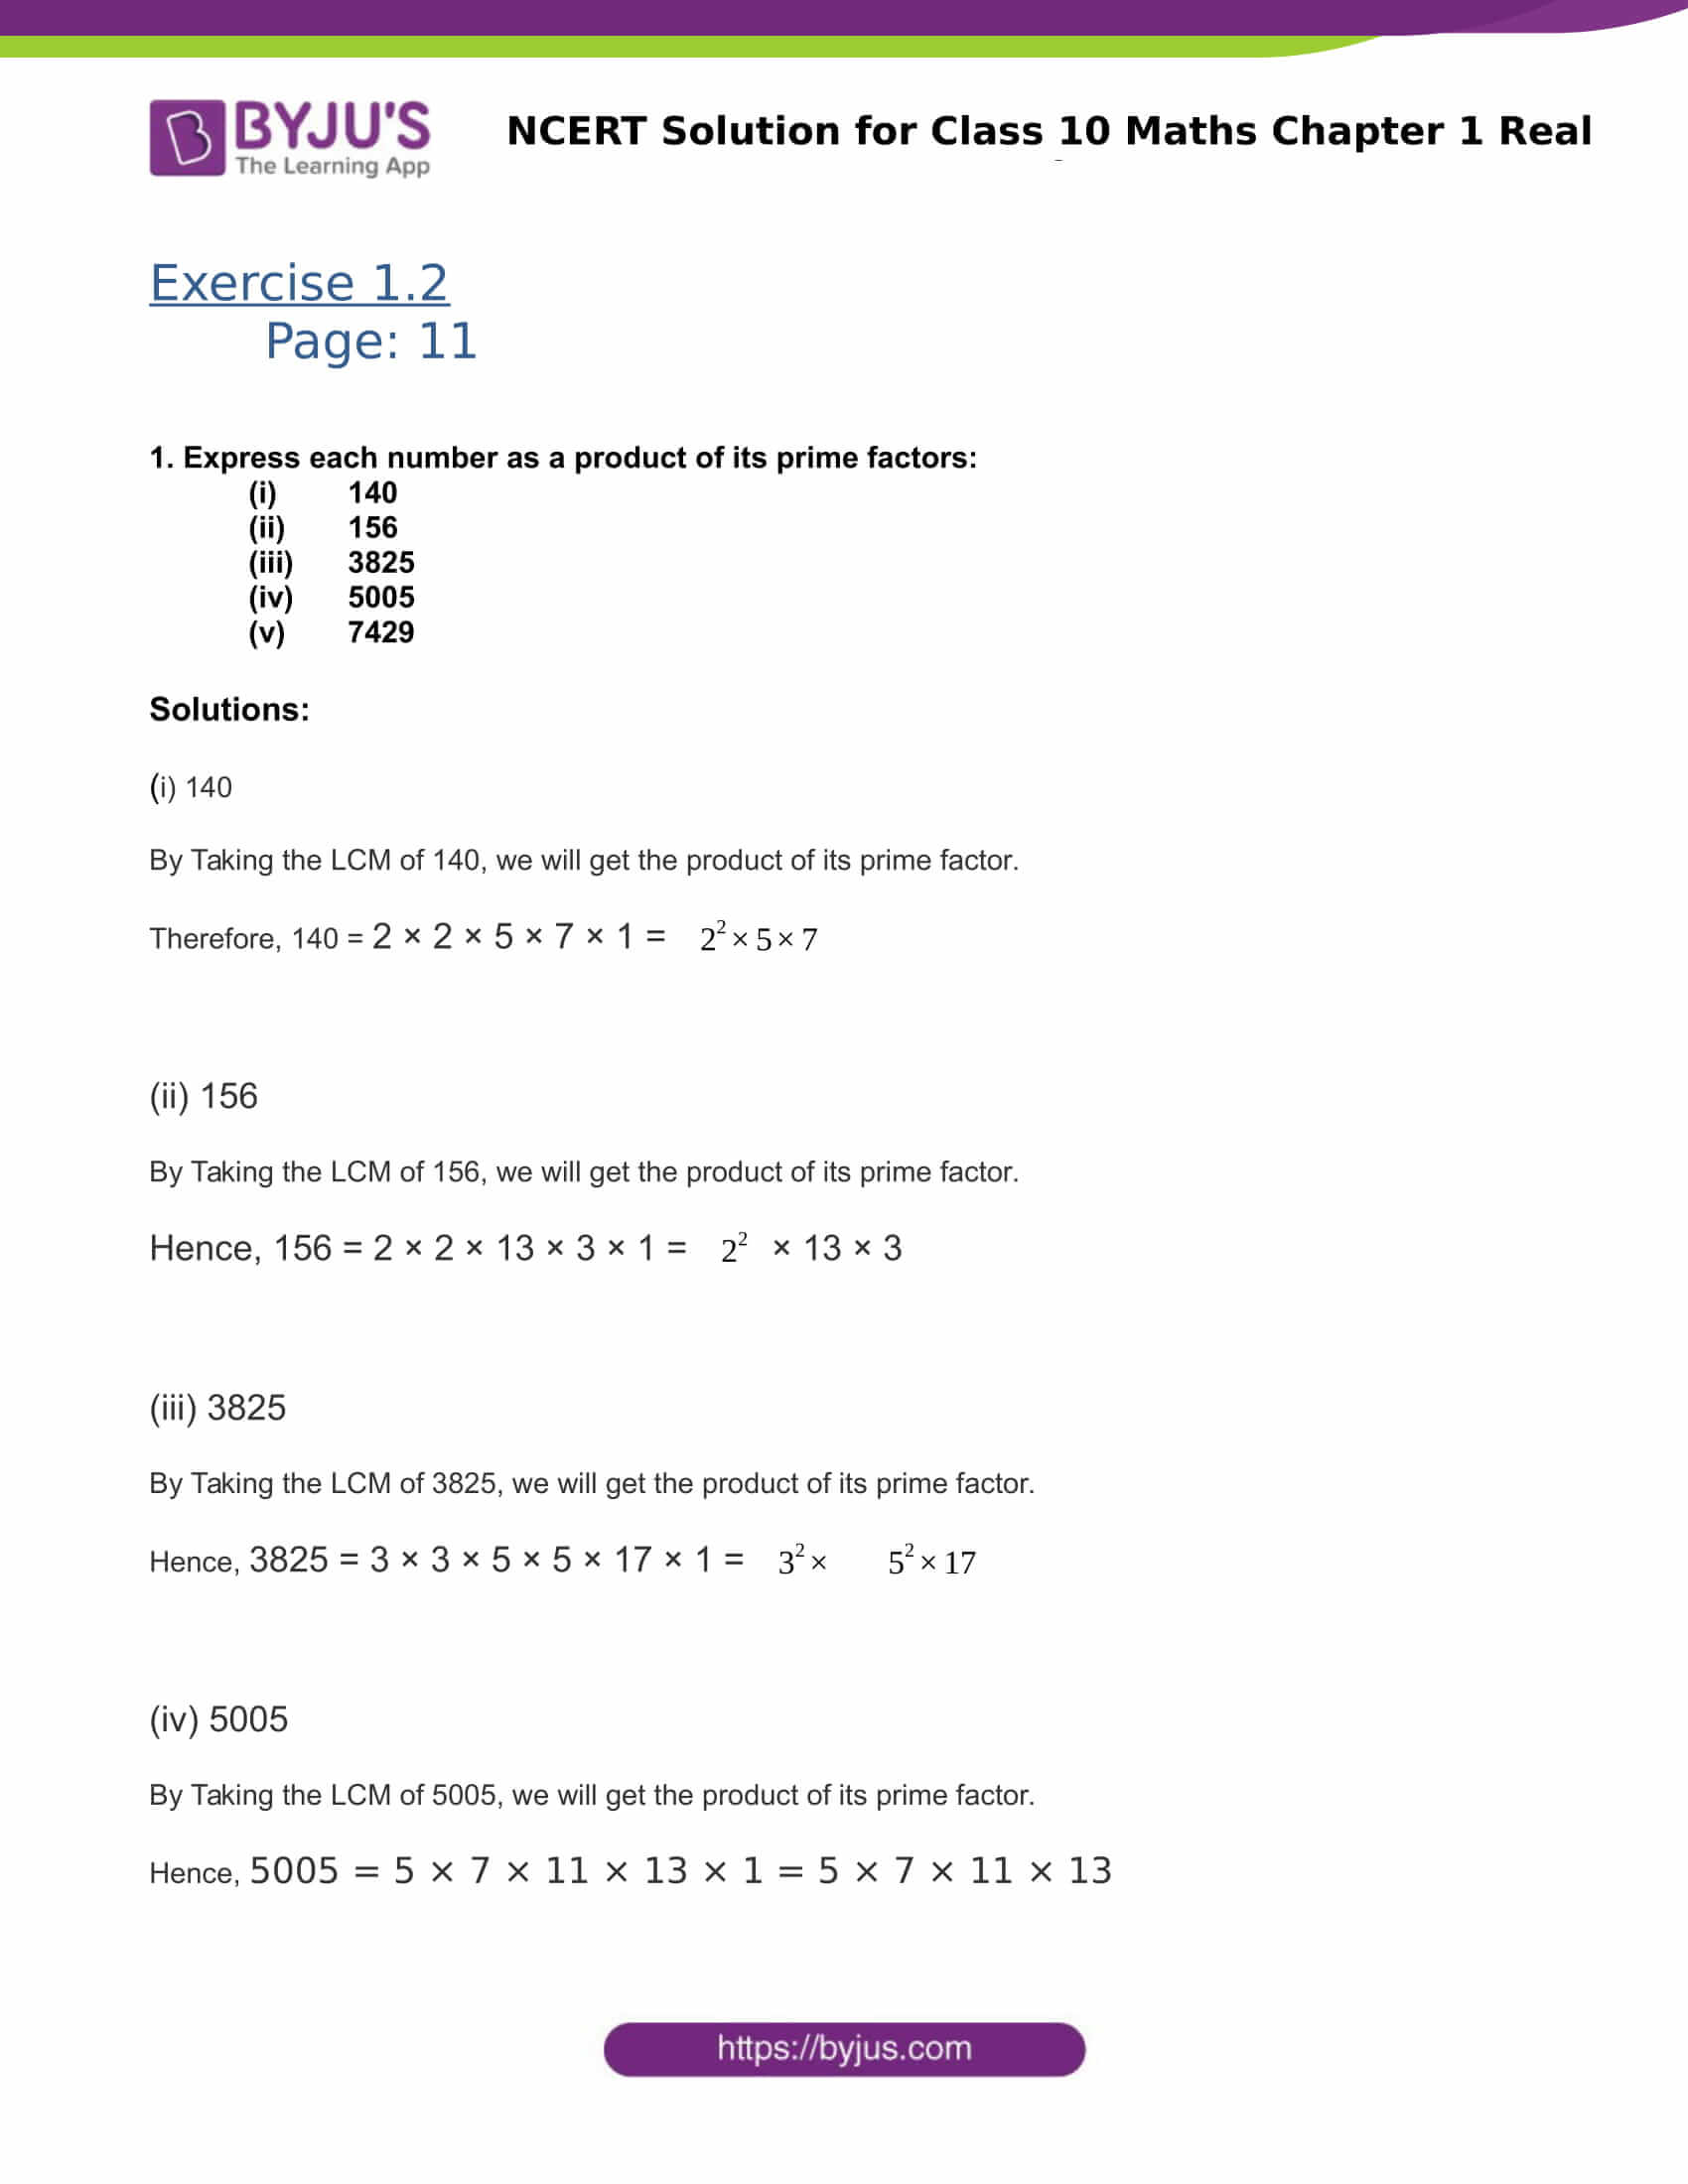 NCERT Solutions for Class 10 Maths Exercise 1.2 Chapter 1 ...